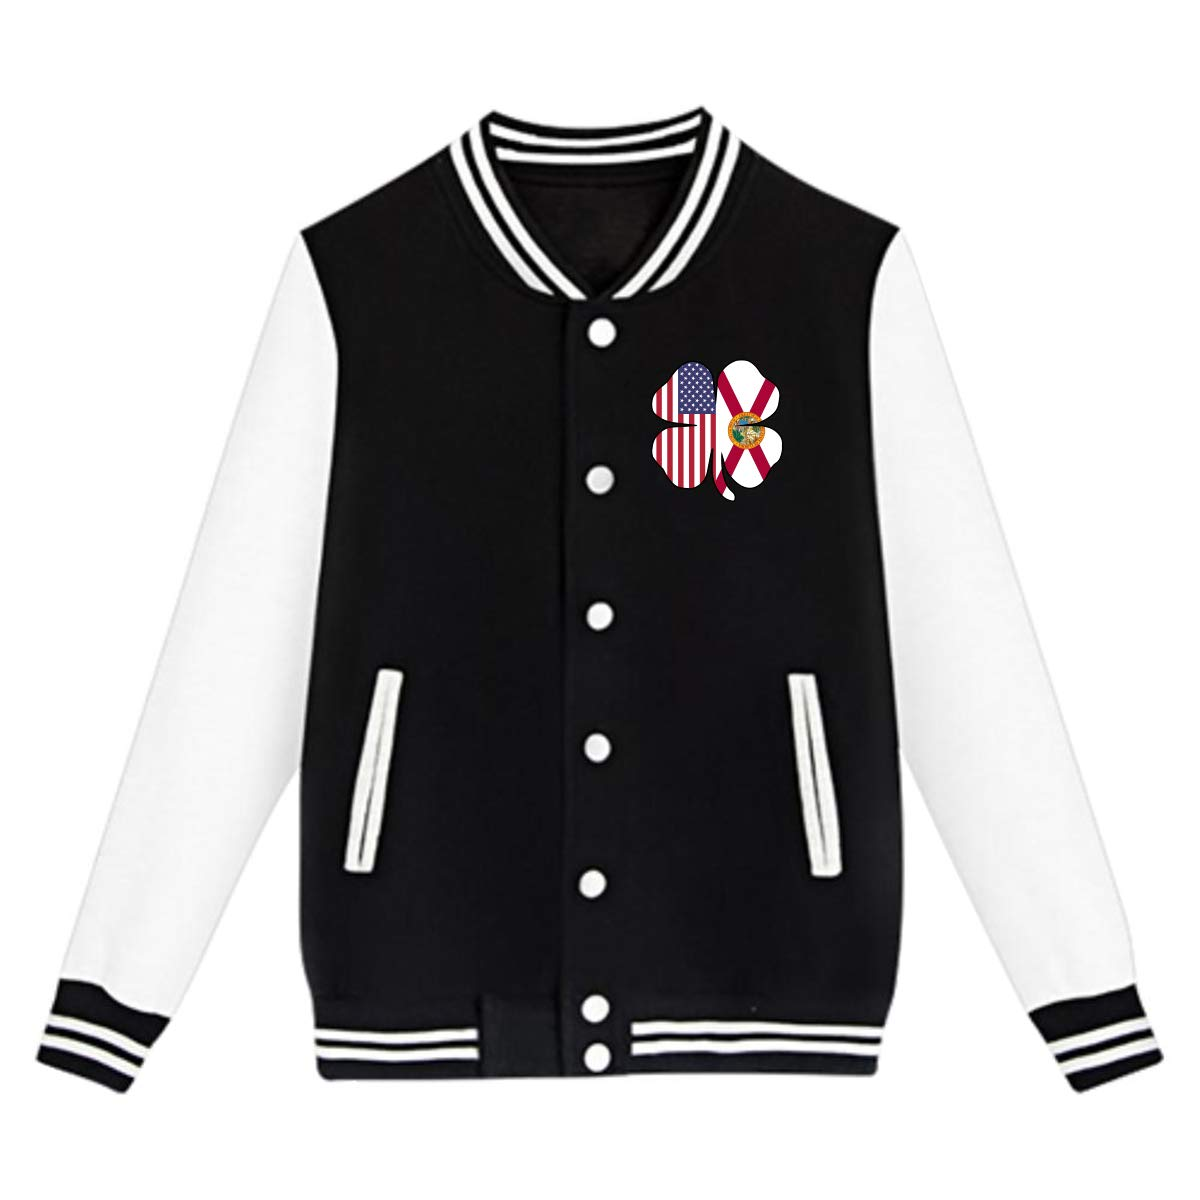 American Florida Flag Shamrock Coat Sport Outfit NJKM5MJ Unisex Youth Baseball Uniform Jacket